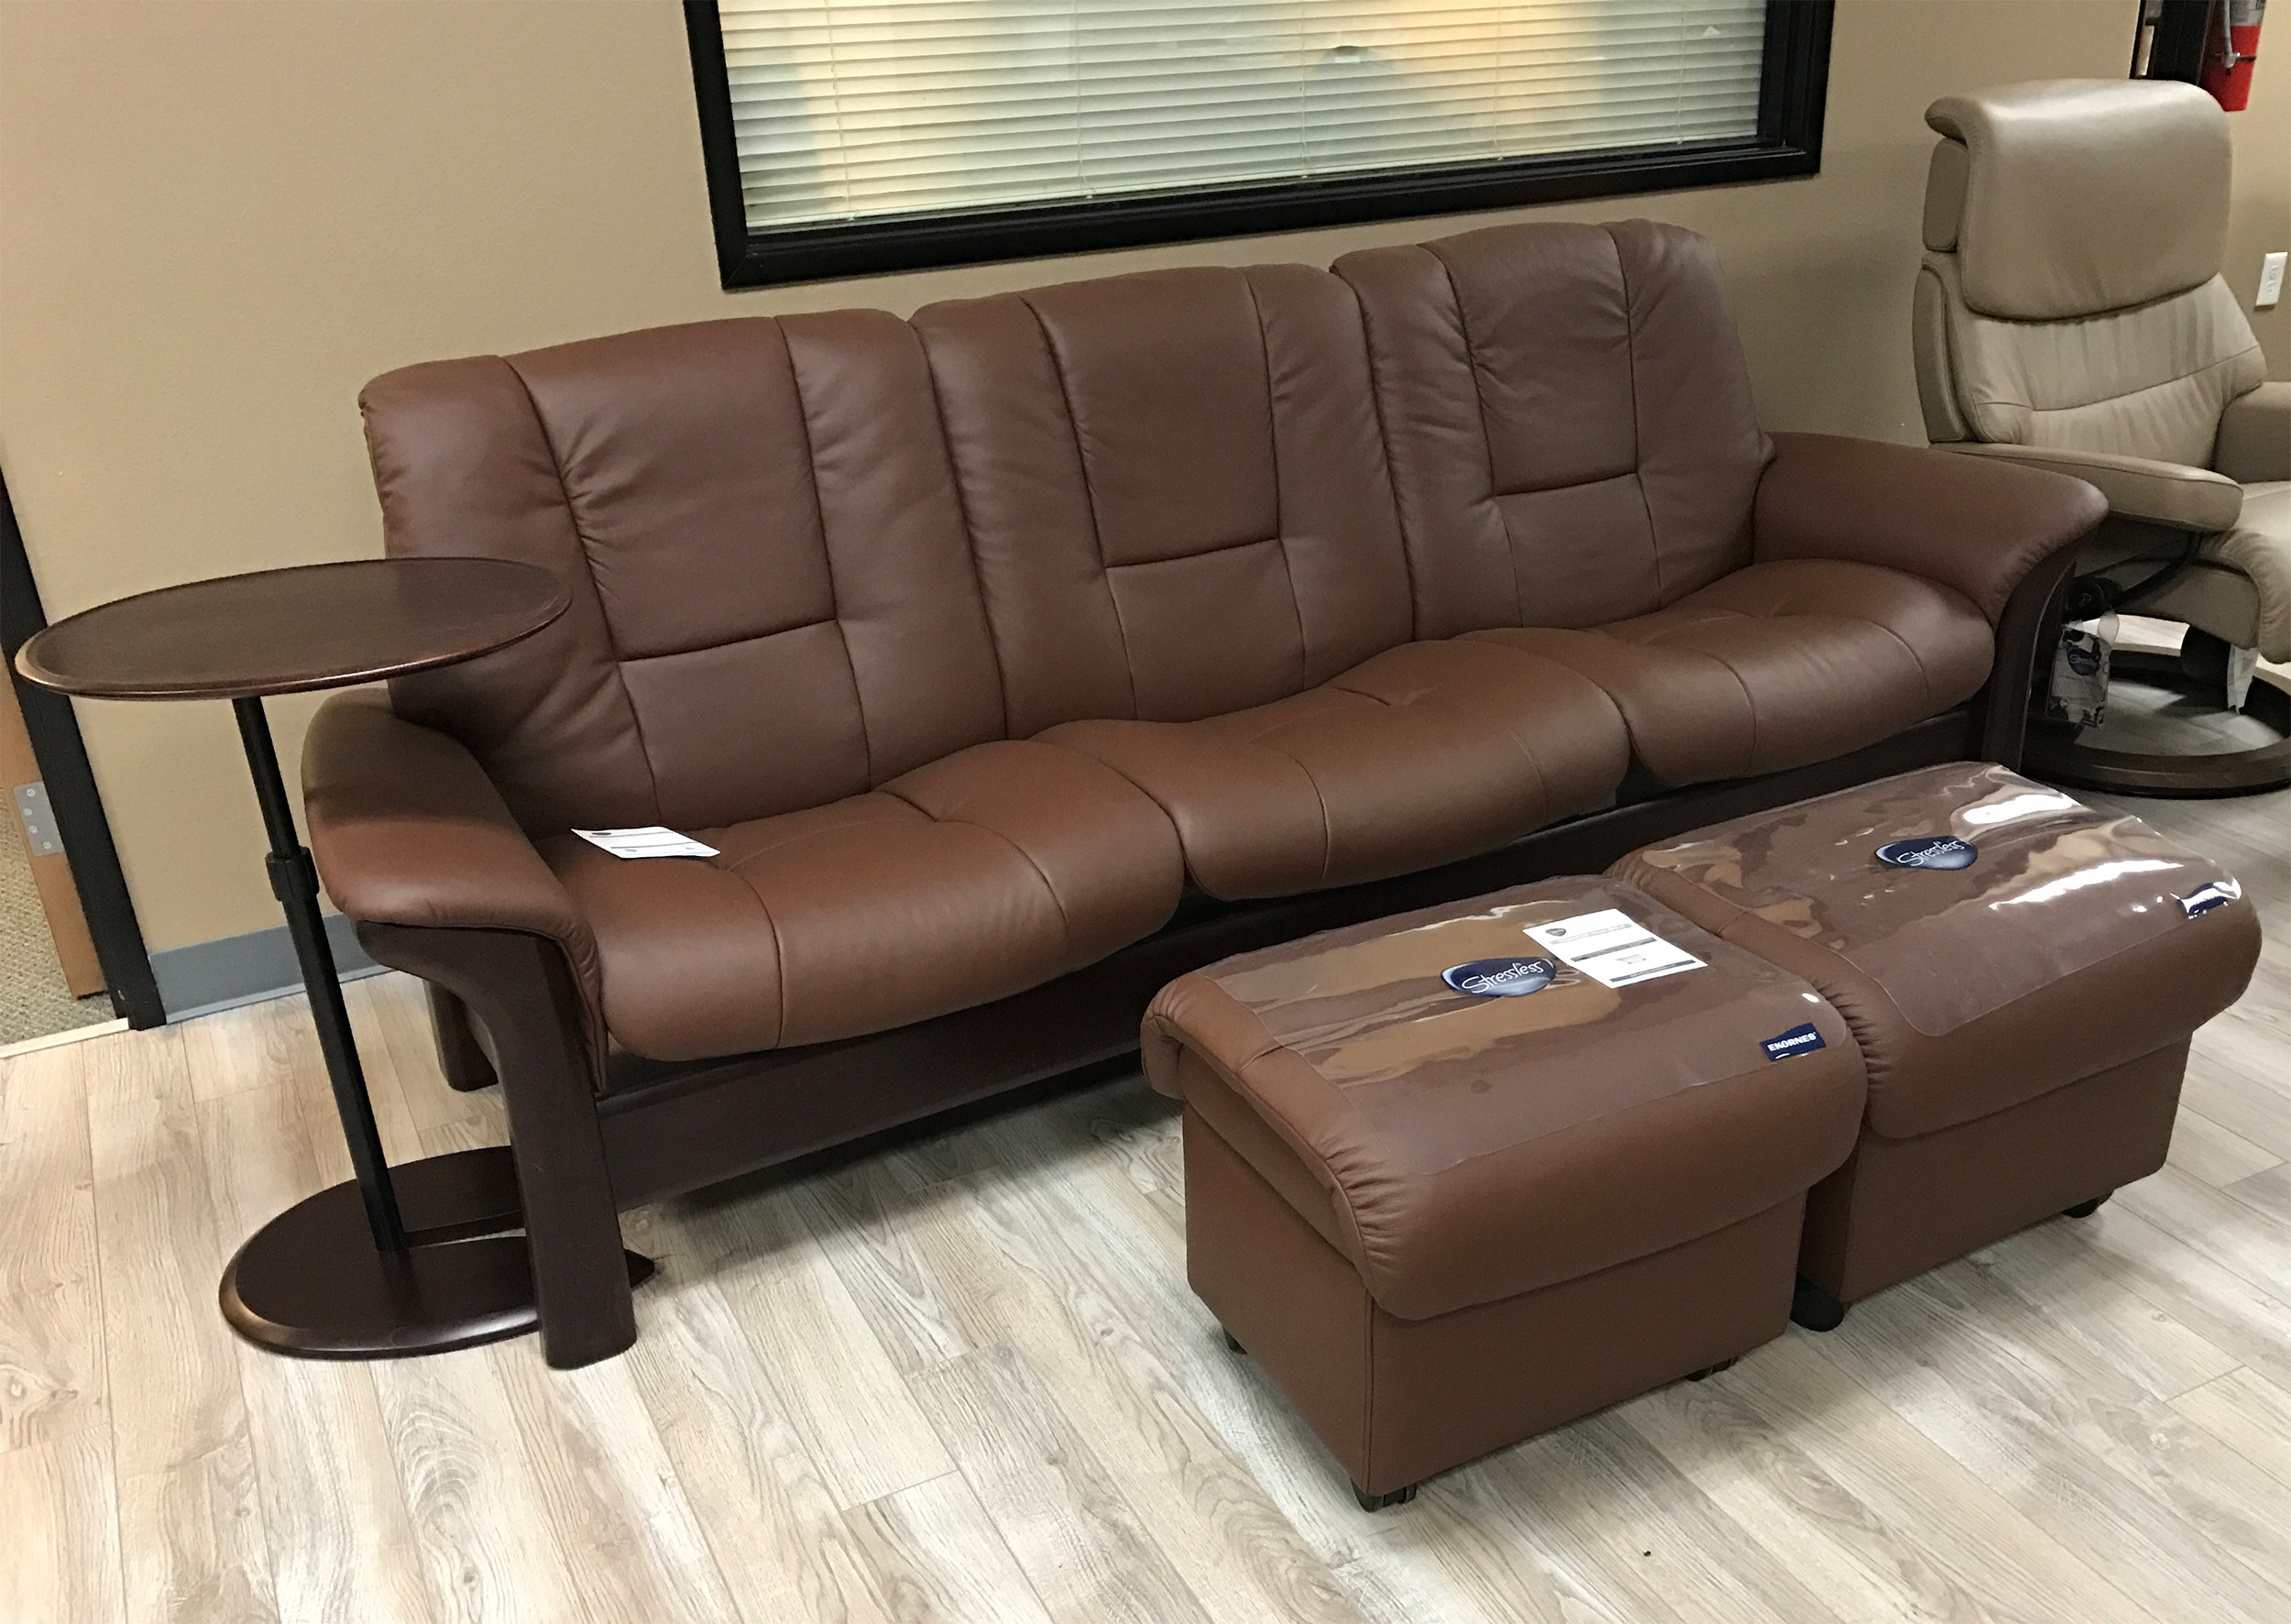 ekornes stressless medium soft ottoman large ottomans and tables double ottoman soft ottoman. Black Bedroom Furniture Sets. Home Design Ideas